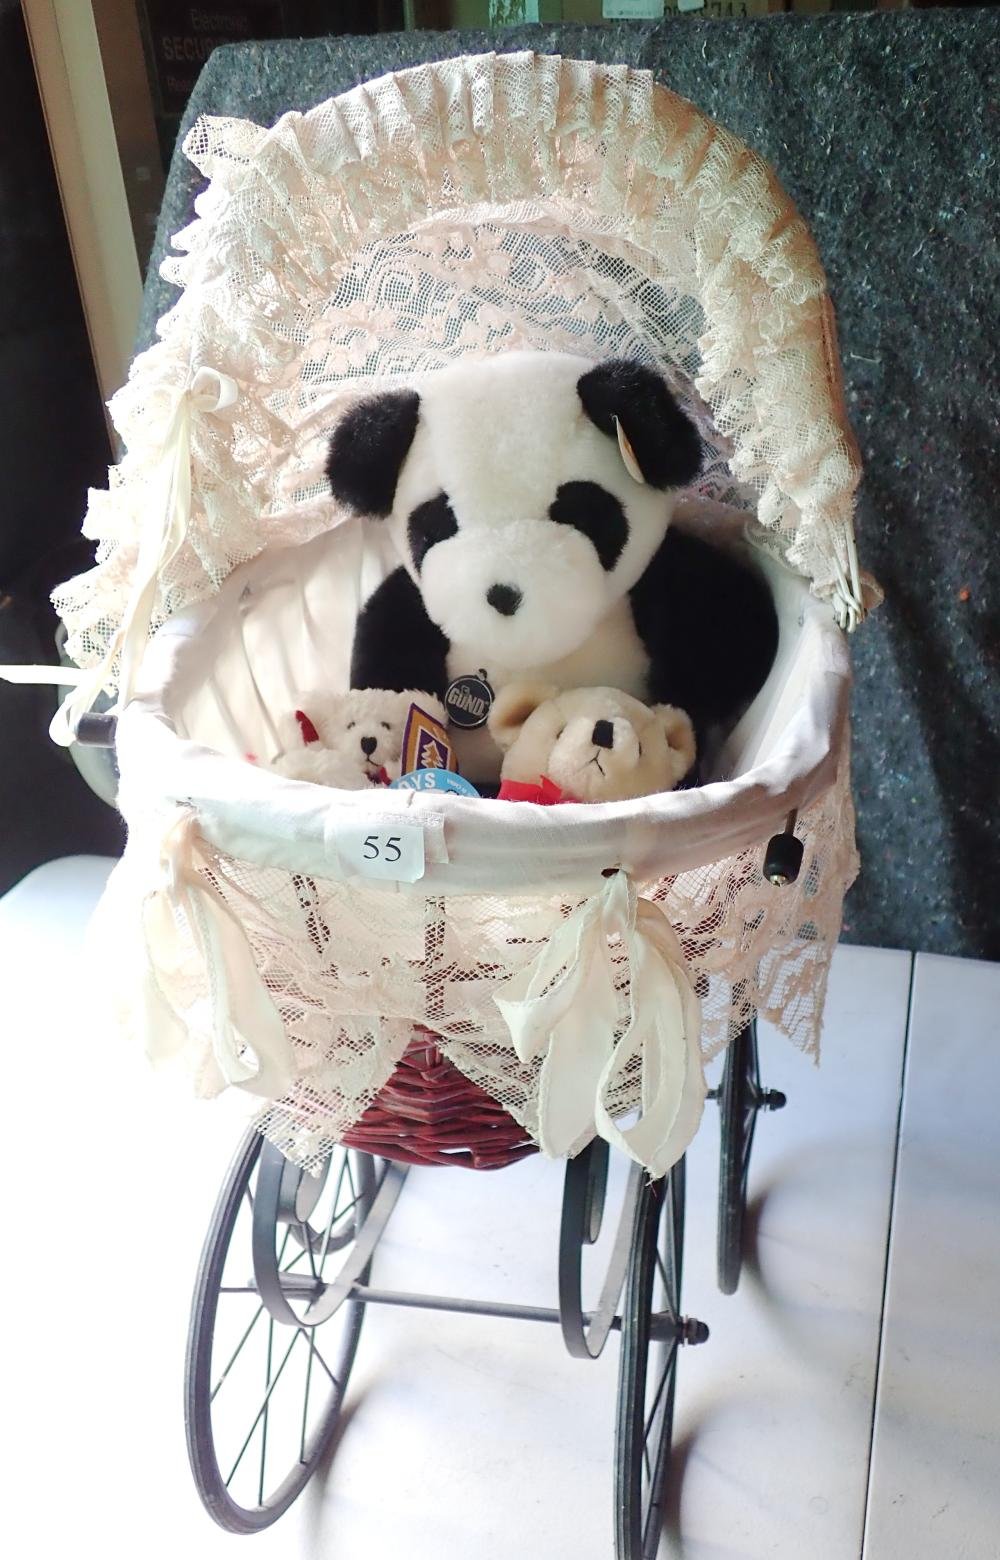 "REPRODUCTION DOLLS PRAM VIC STYLE 29"" LONG 31"" HIGH CANE BASKET WITH MATERIAL TOP METAL BASE WITH (1) 14"" PANDORA PANDA BY GUND COLLECTORS CLASSIC LTD EDT MADE IN KOREA (2) CE KEES TOY 4"" SHEEP (3) JACK IN BOX 10"""